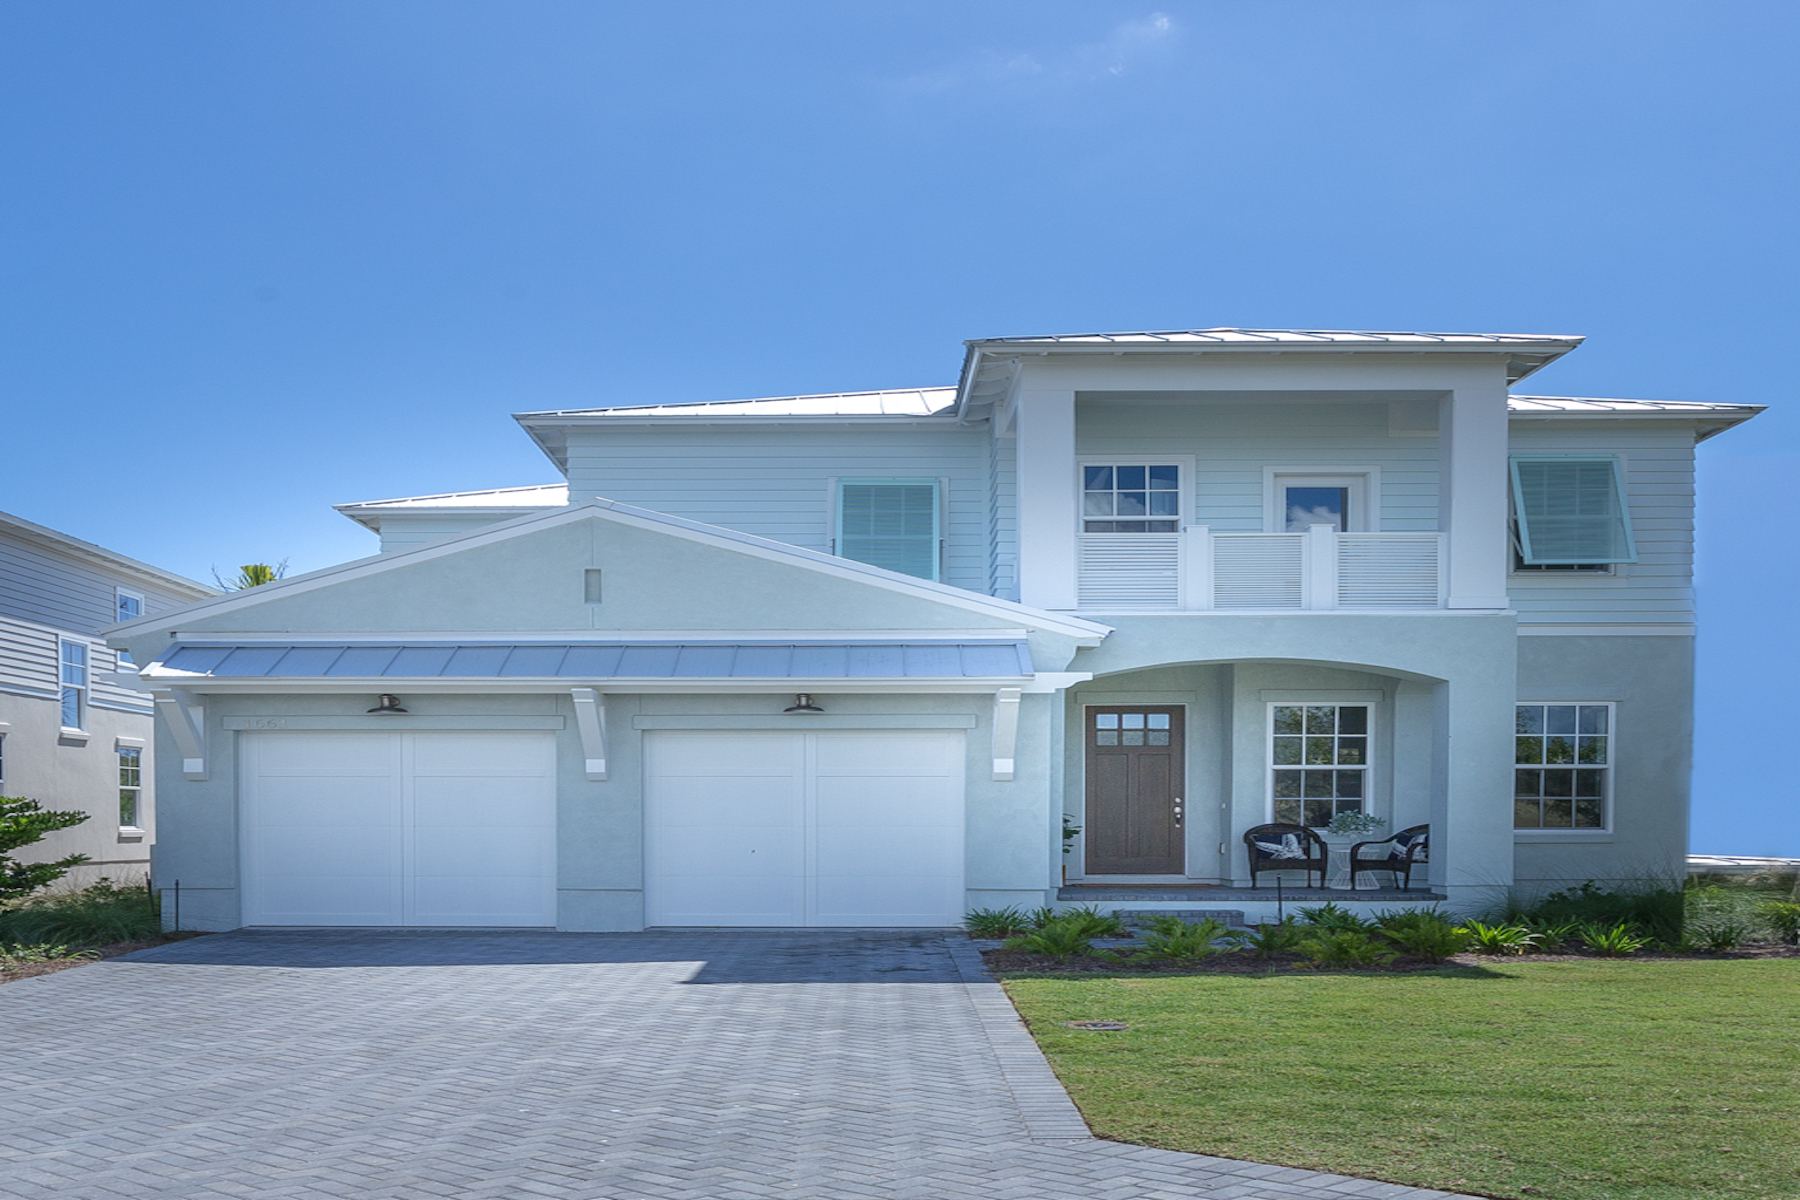 Single Family Home for Sale at Atlantic Beach Country Club Beauty 1661 Atlantic Beach Drive Atlantic Beach, Florida 32081 United States